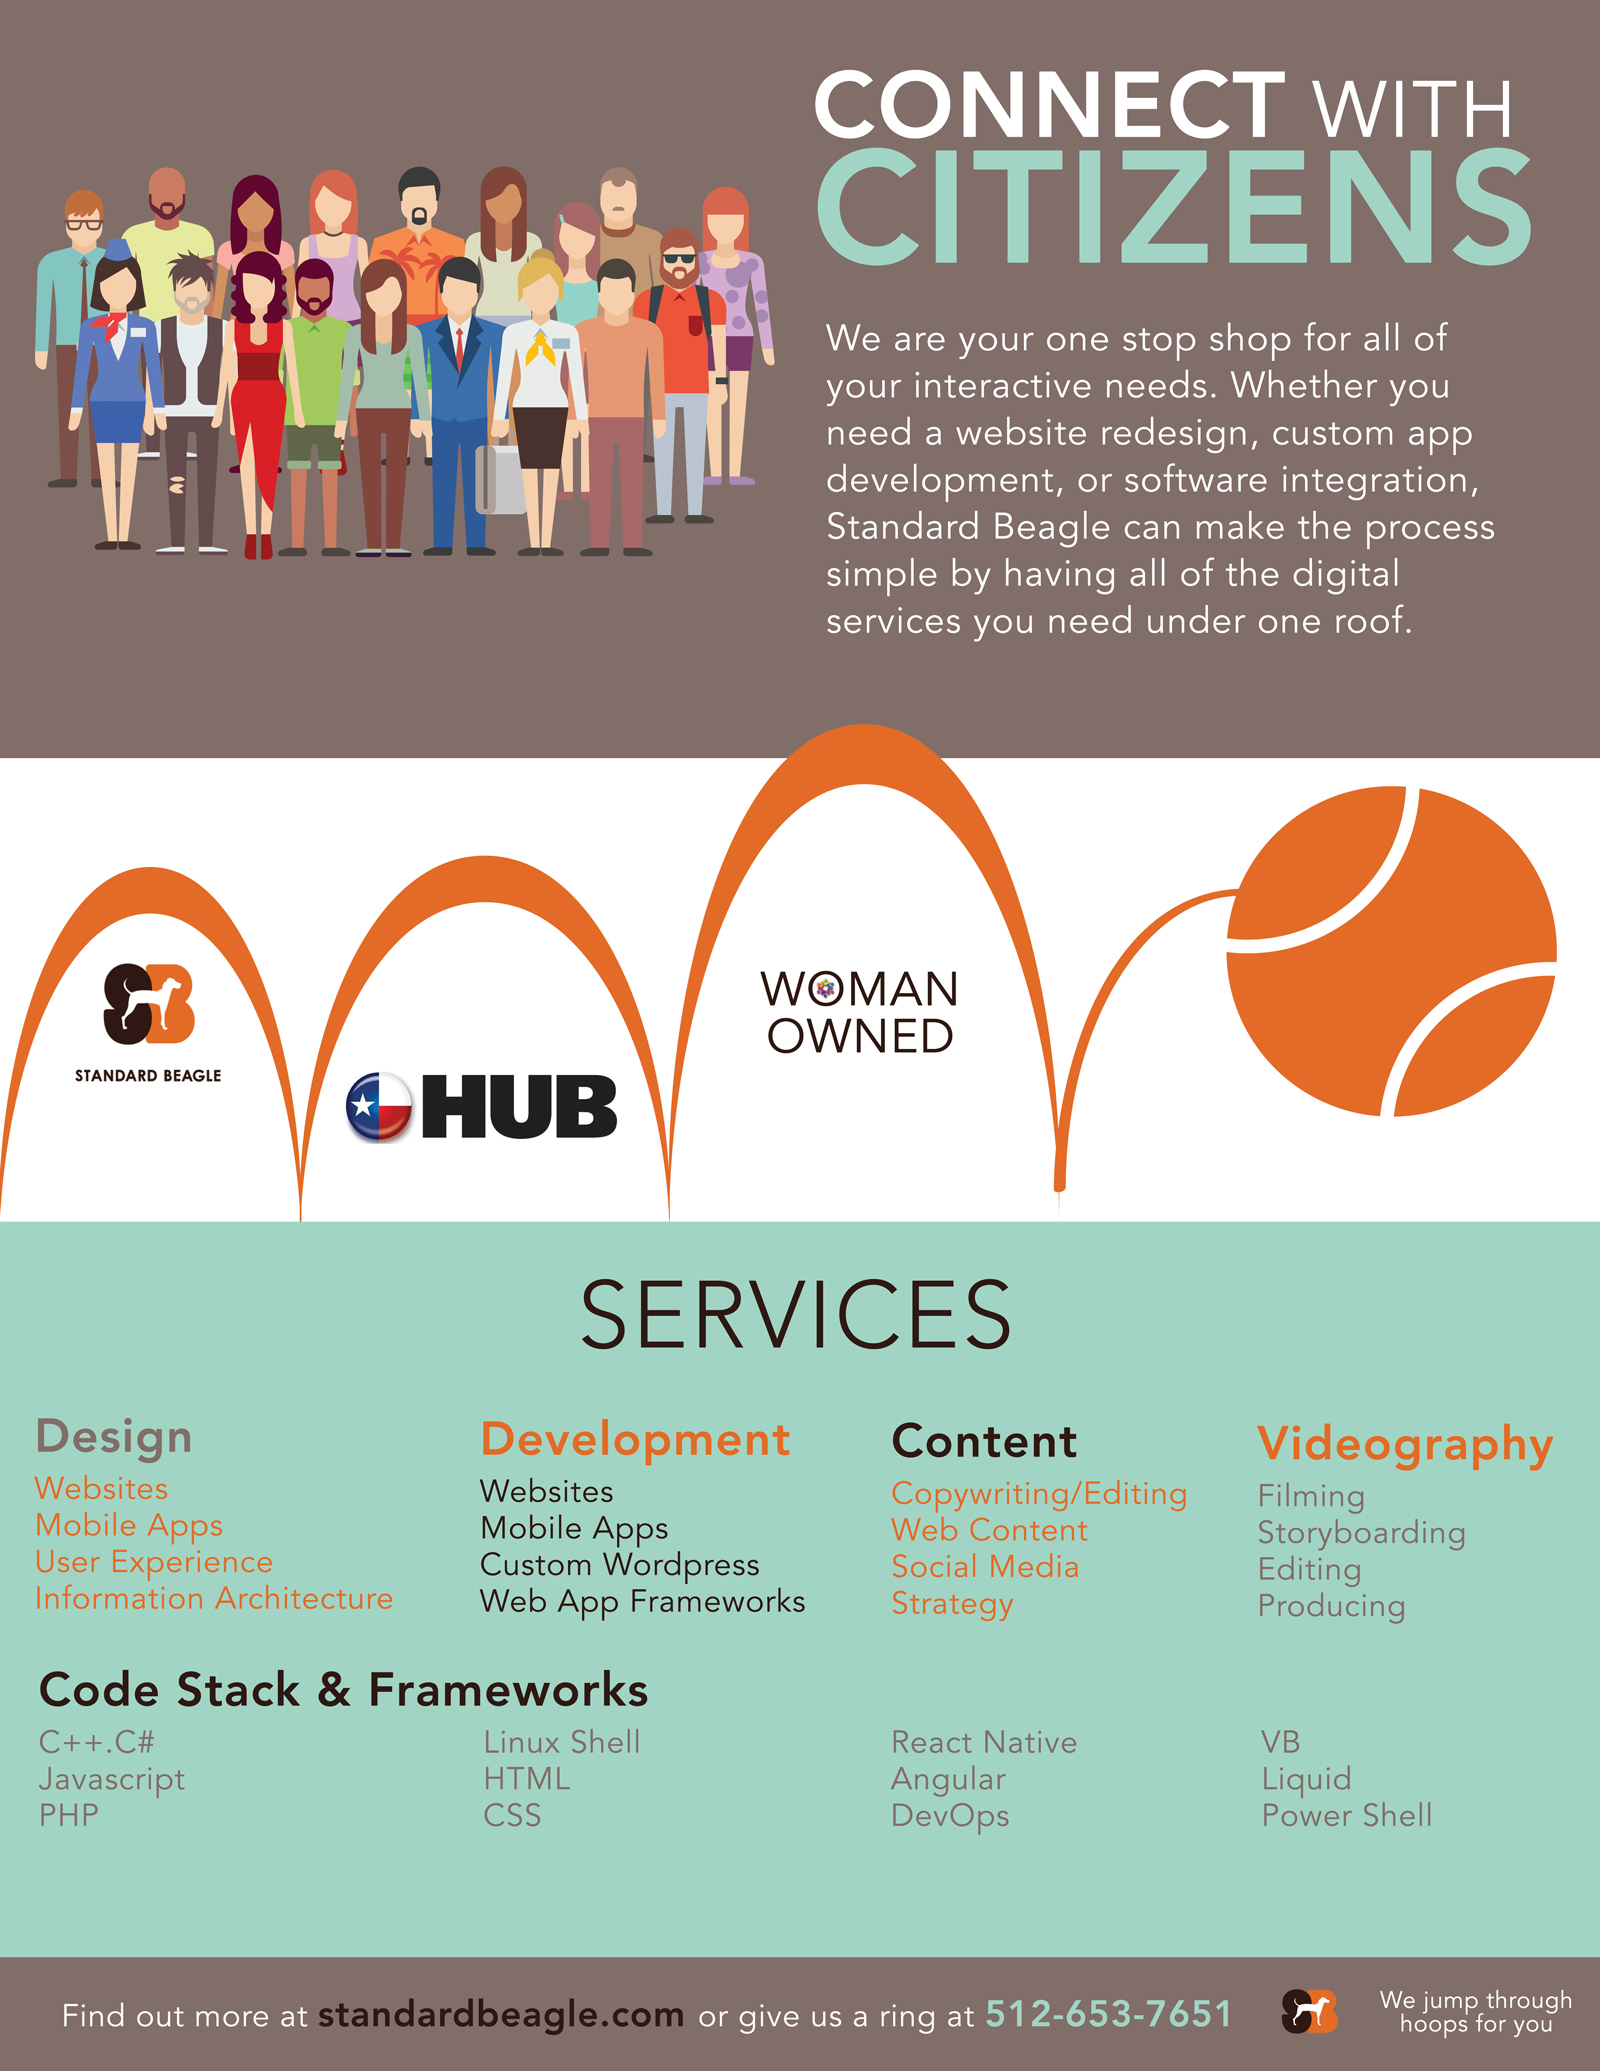 HUB Flyer - Marketing Material